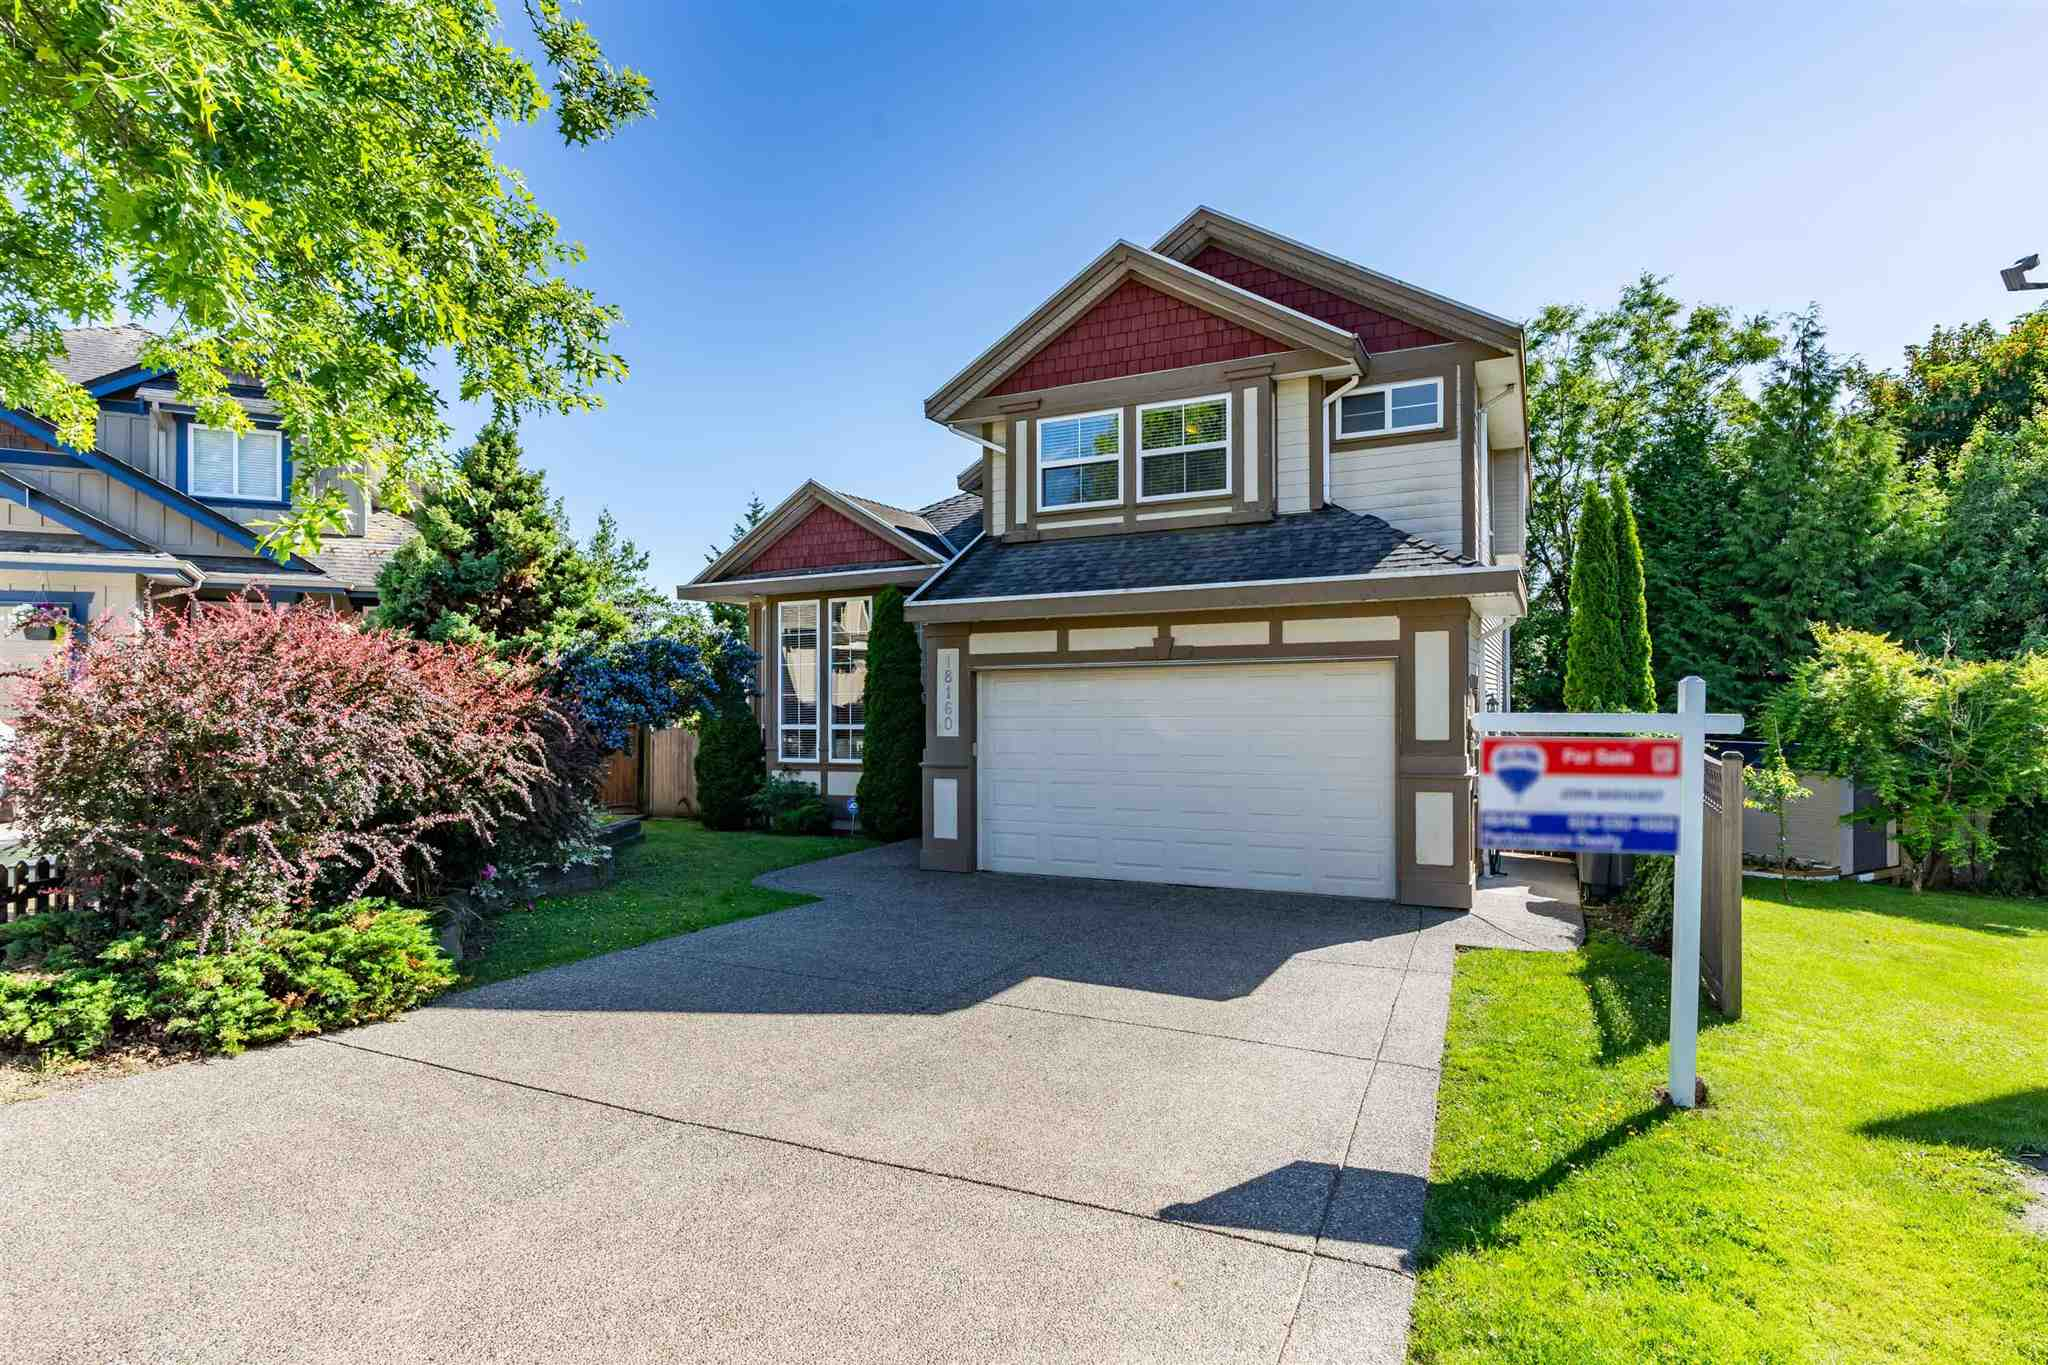 18160 60A AVENUE - Cloverdale BC House/Single Family for sale, 8 Bedrooms (R2590172) - #1